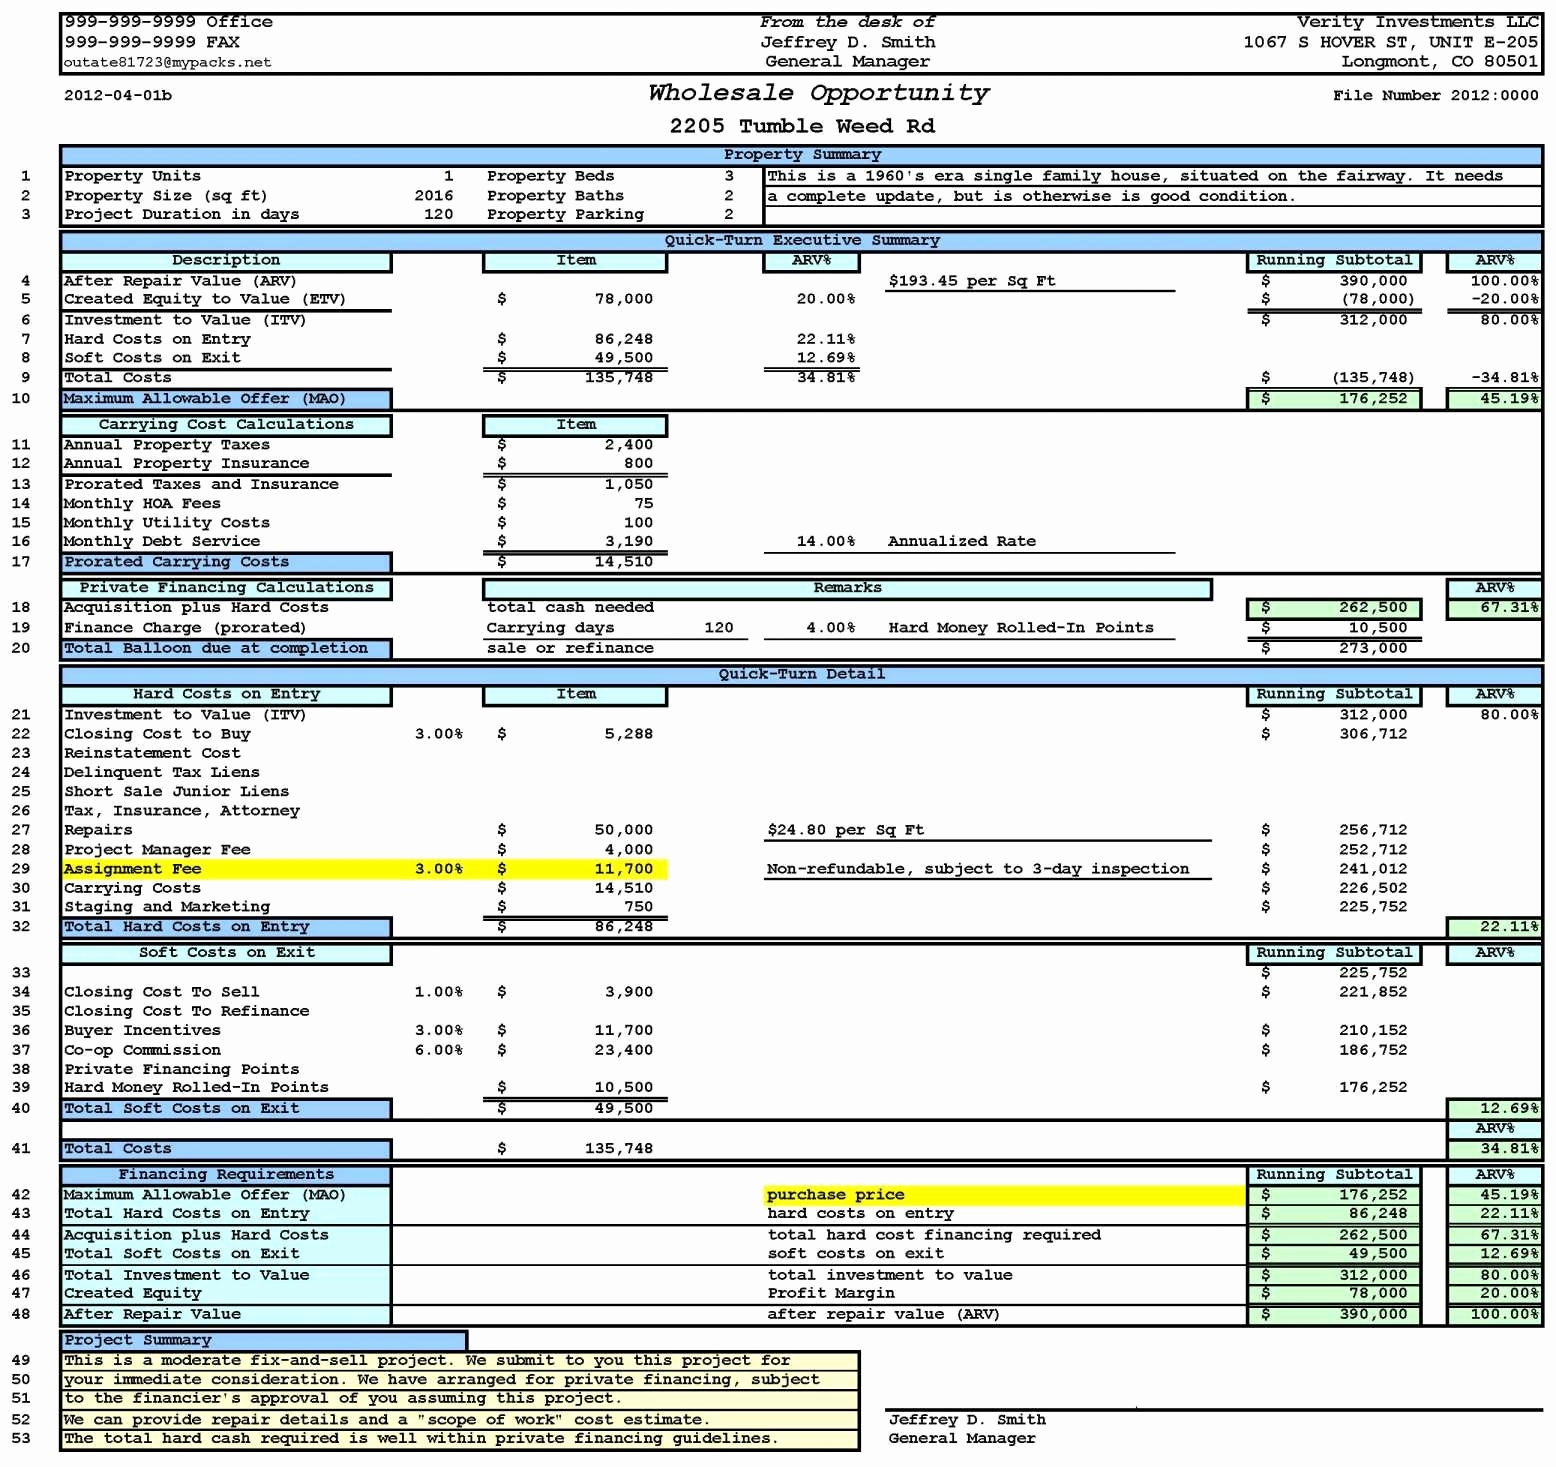 goodwill donation excel spreadsheet Awesome Spreadsheet Templates Free Investment Property Calculator Excel